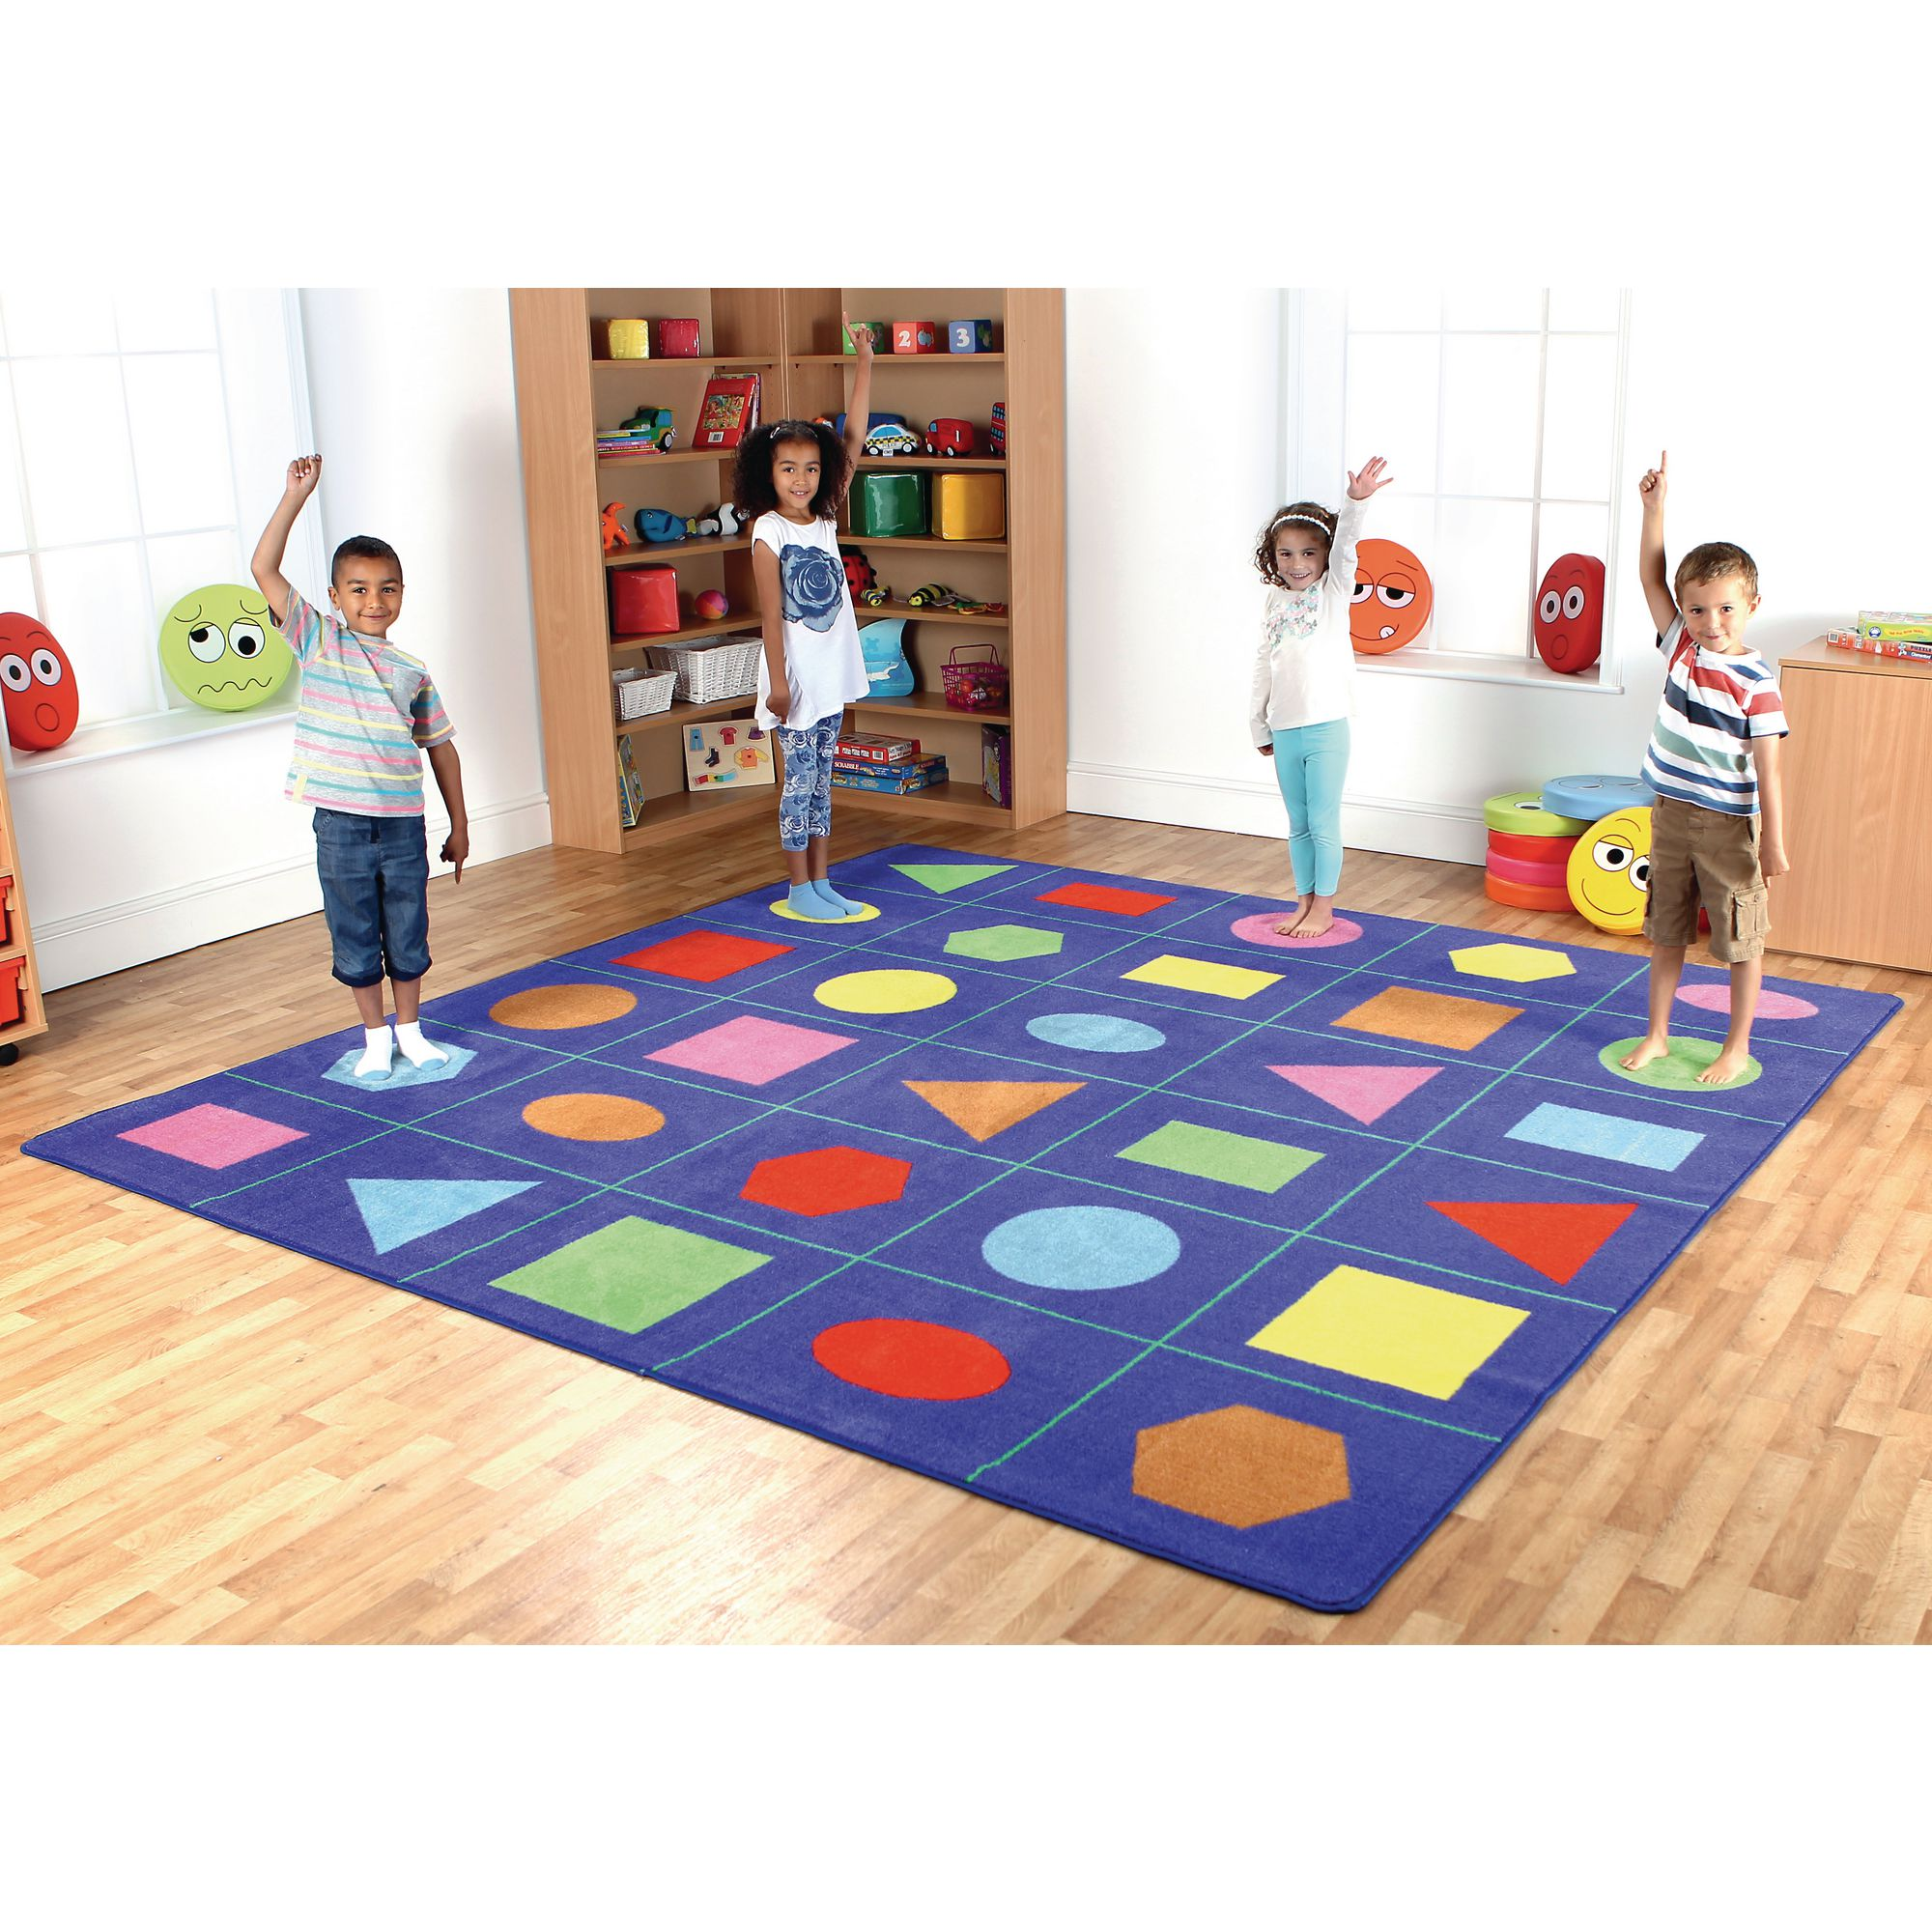 Geometric Shapes Placement Mat